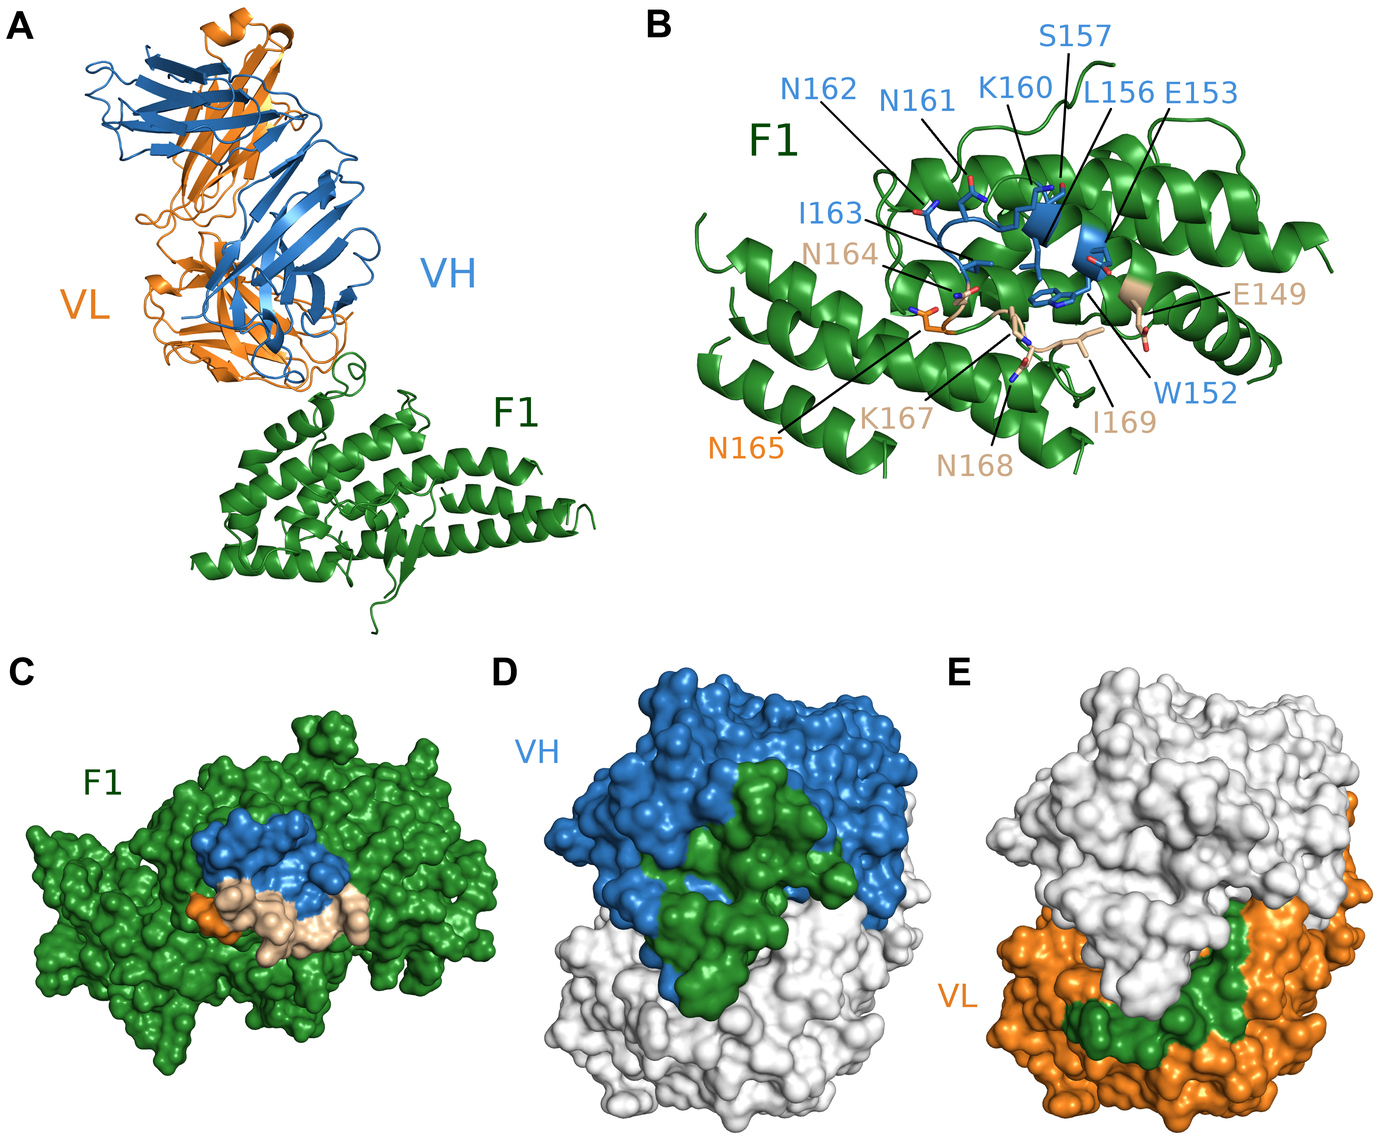 Crystal structure of F1/R218 Fab complex.